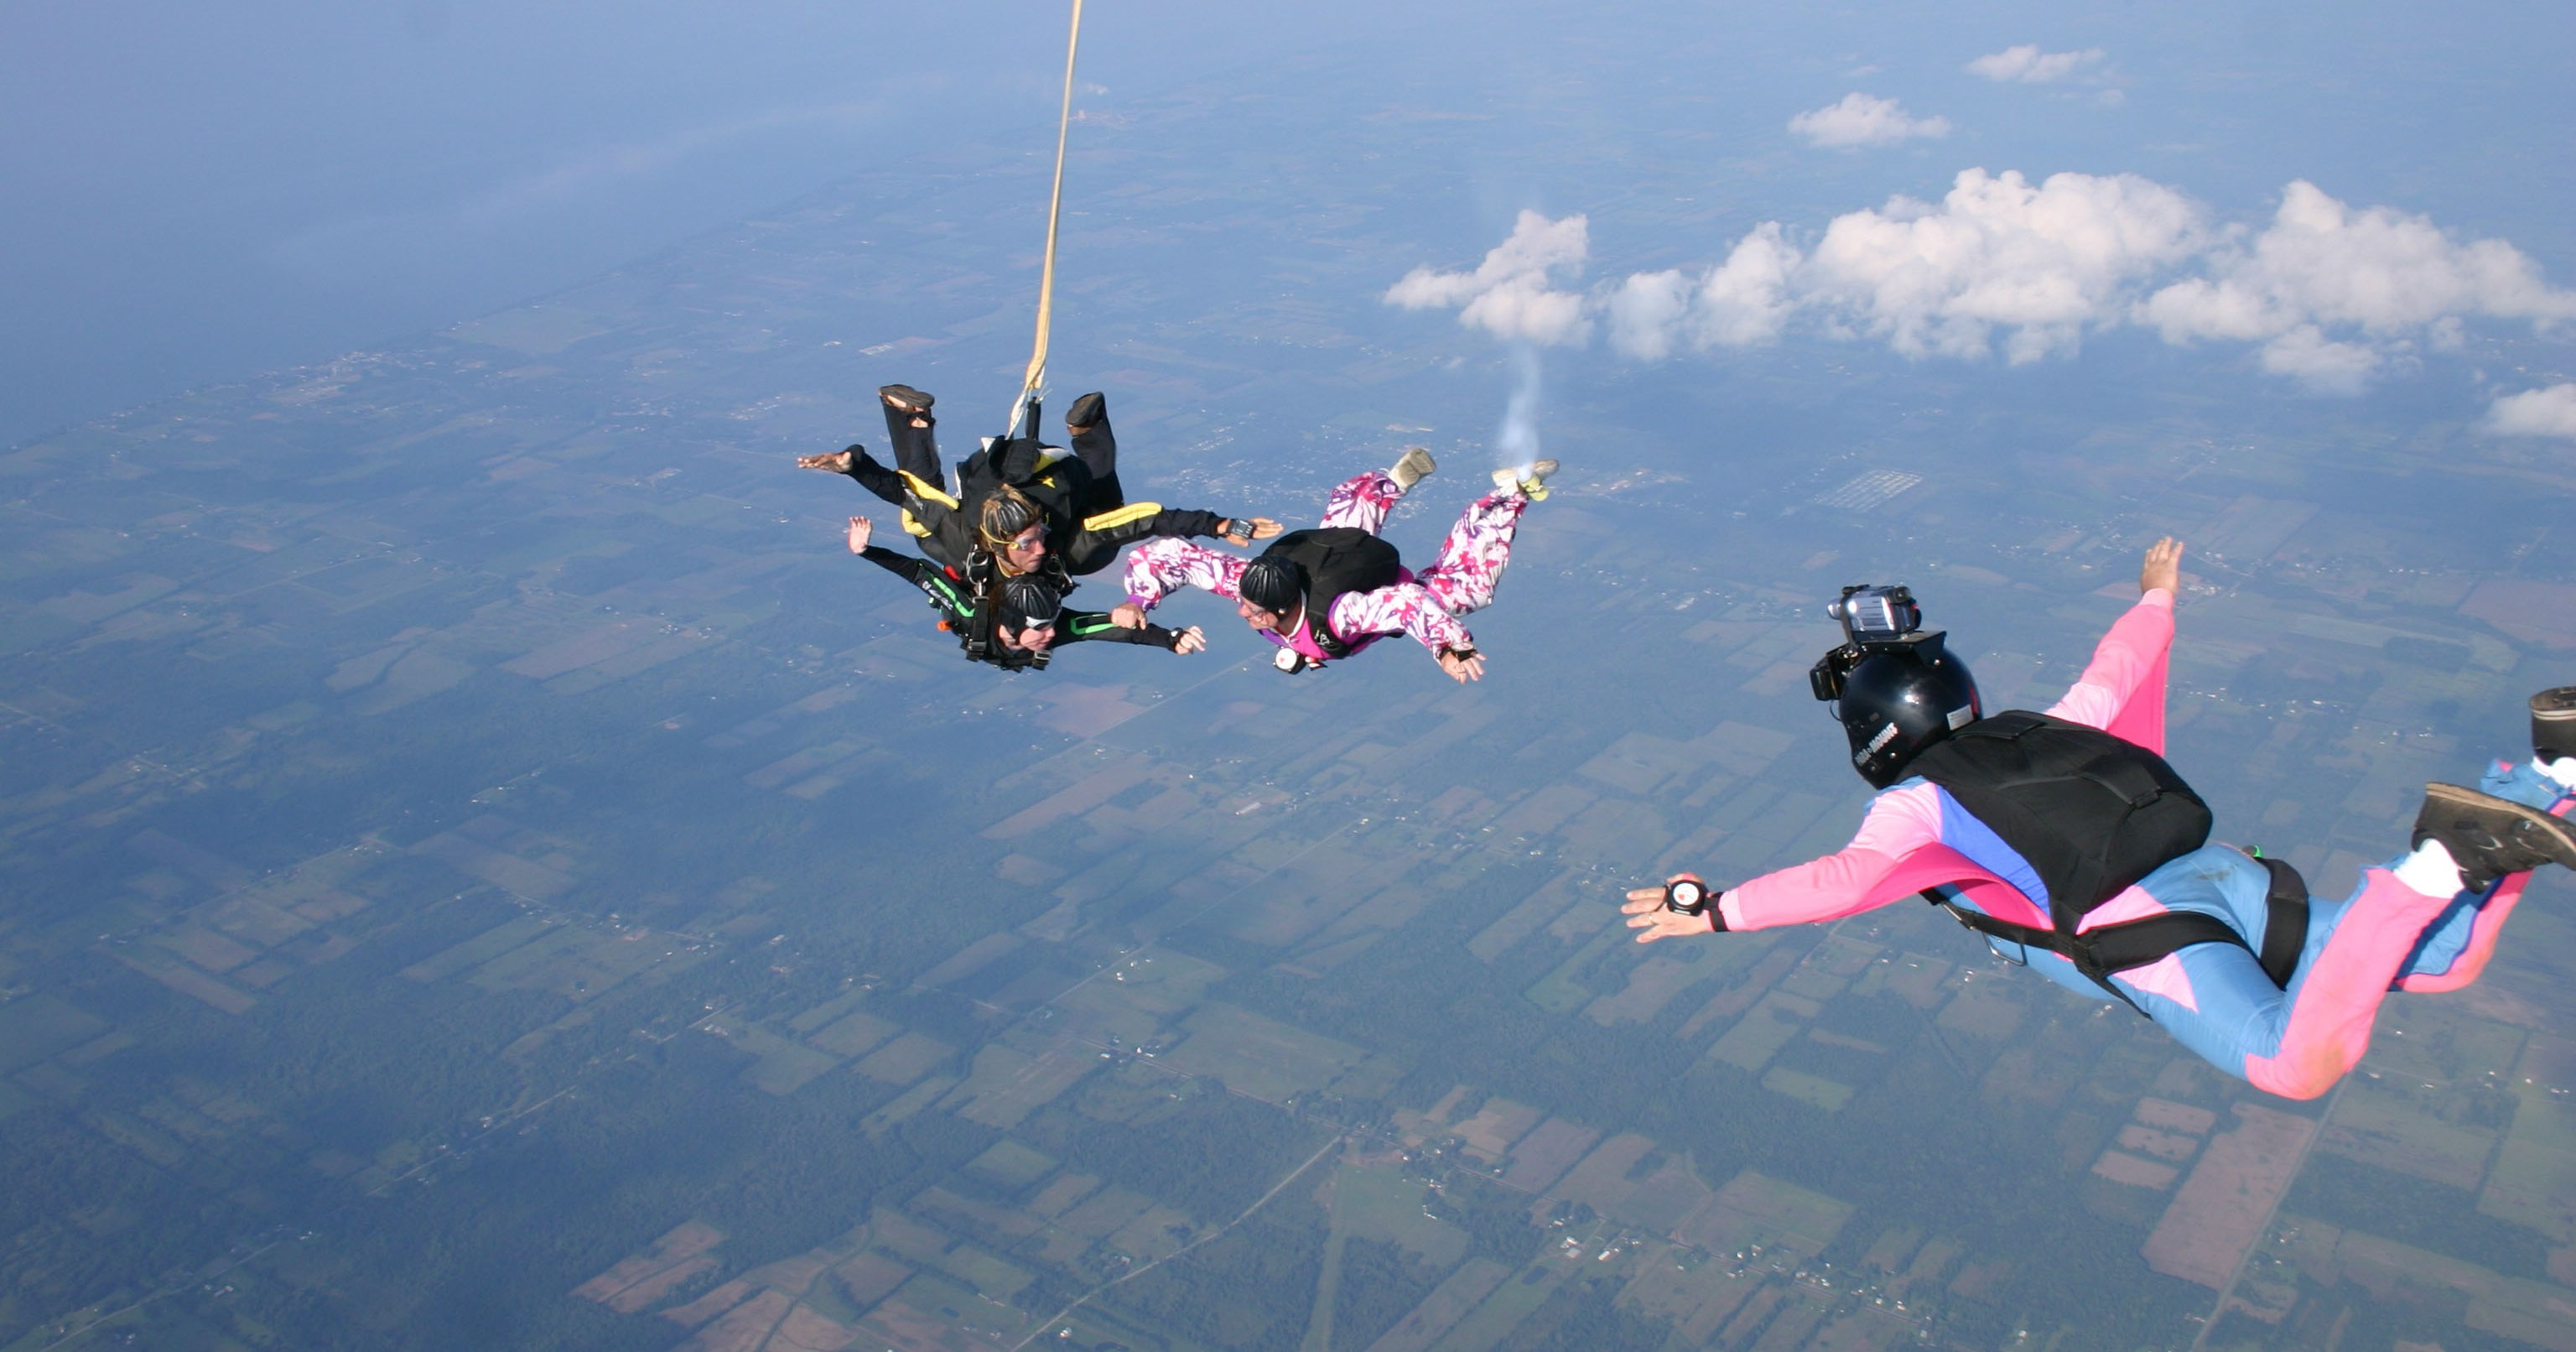 A photo provided by Frontier Skydivers shows Joe Eberhardt serving as pilot for a tandem skydive in 2004. (Jimmy Tavino/Frontier Skydivers)